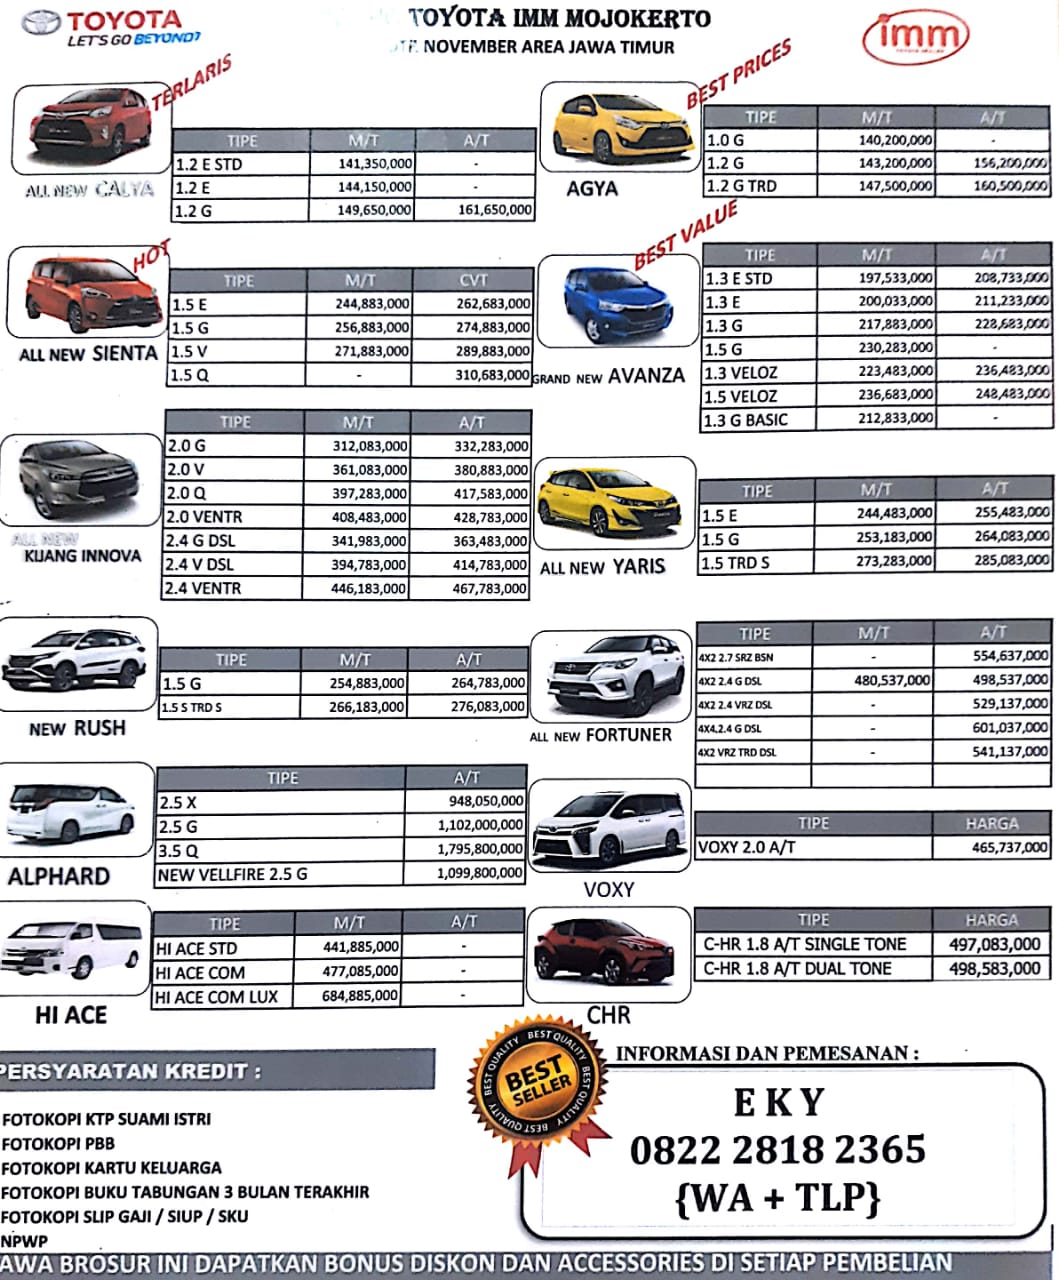 Harga Mobil Toyota By Eky